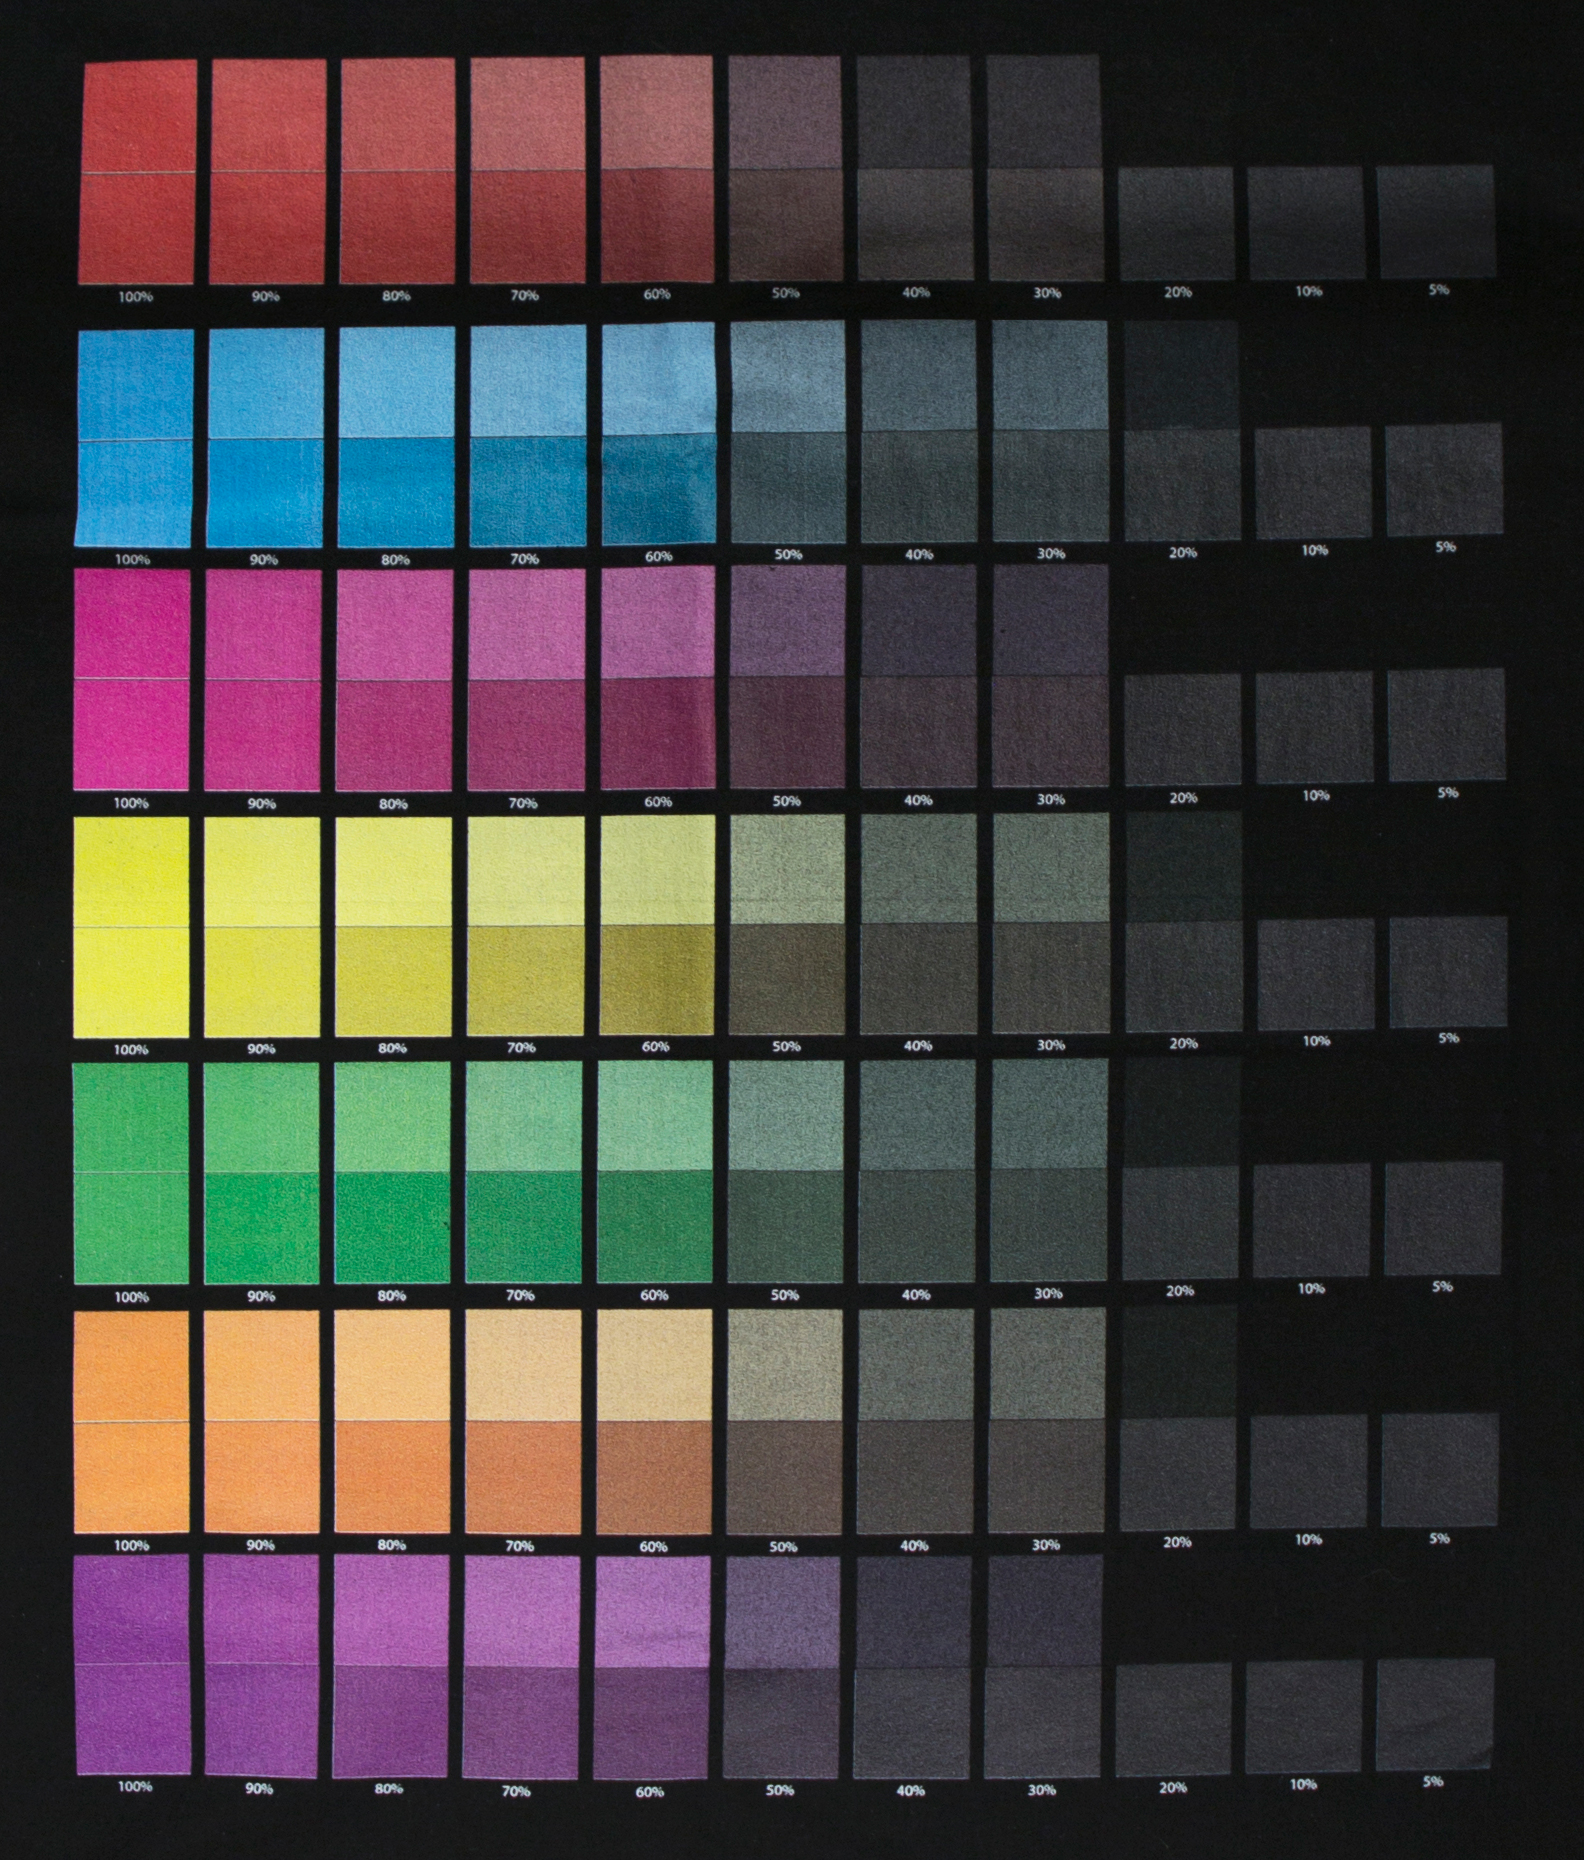 colorswatch_black